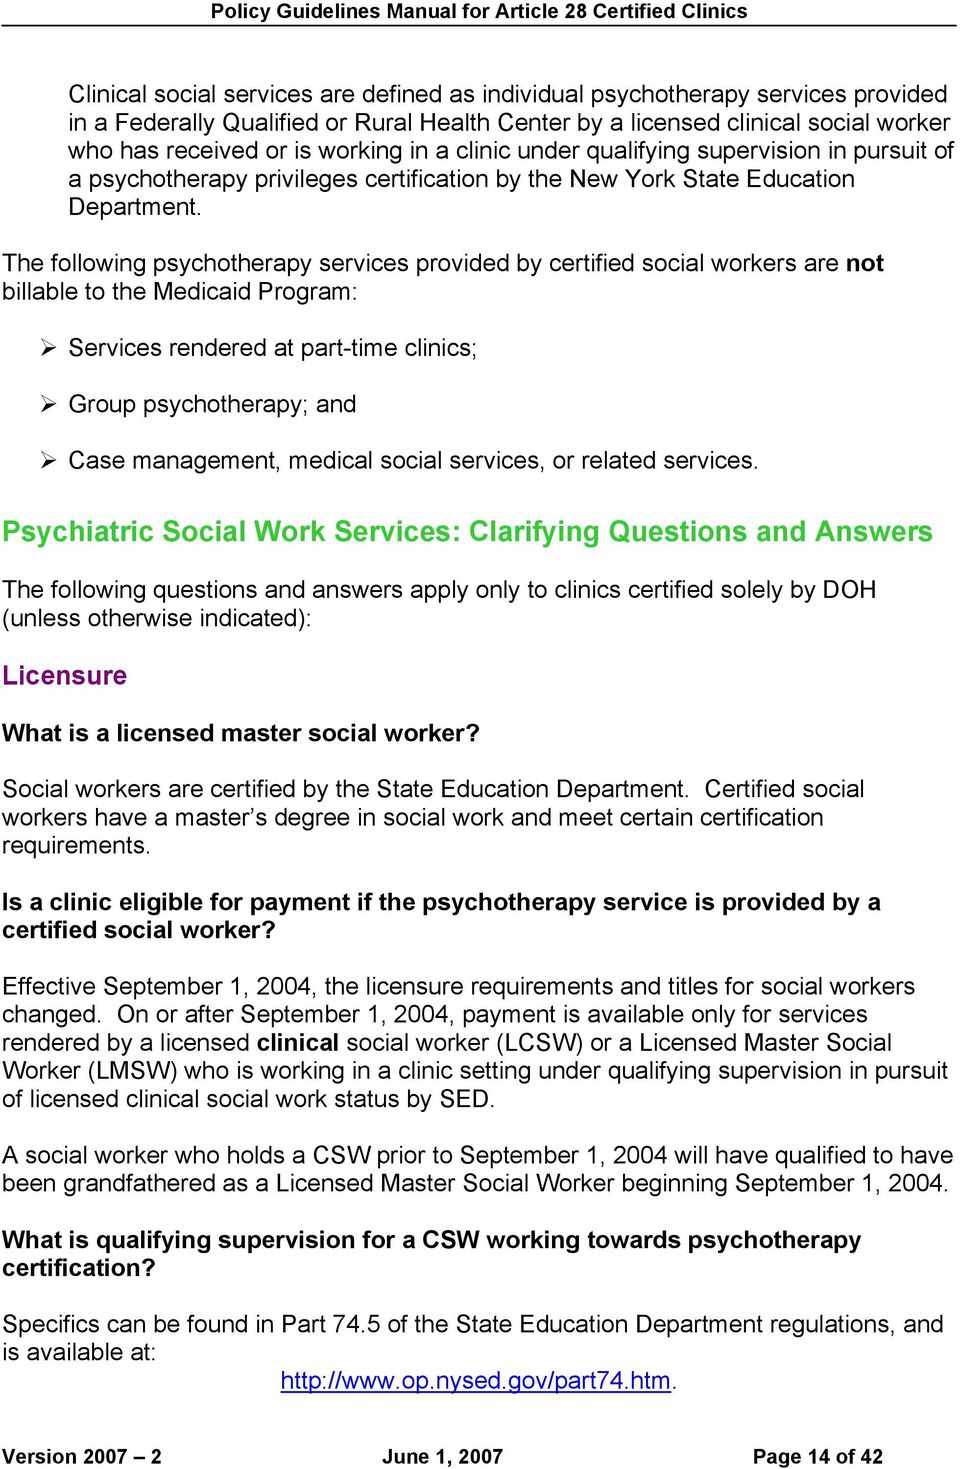 The following psychotherapy services provided by certified social workers are not billable to the Medicaid Program: Services rendered at part-time clinics; Group psychotherapy; and Case management,